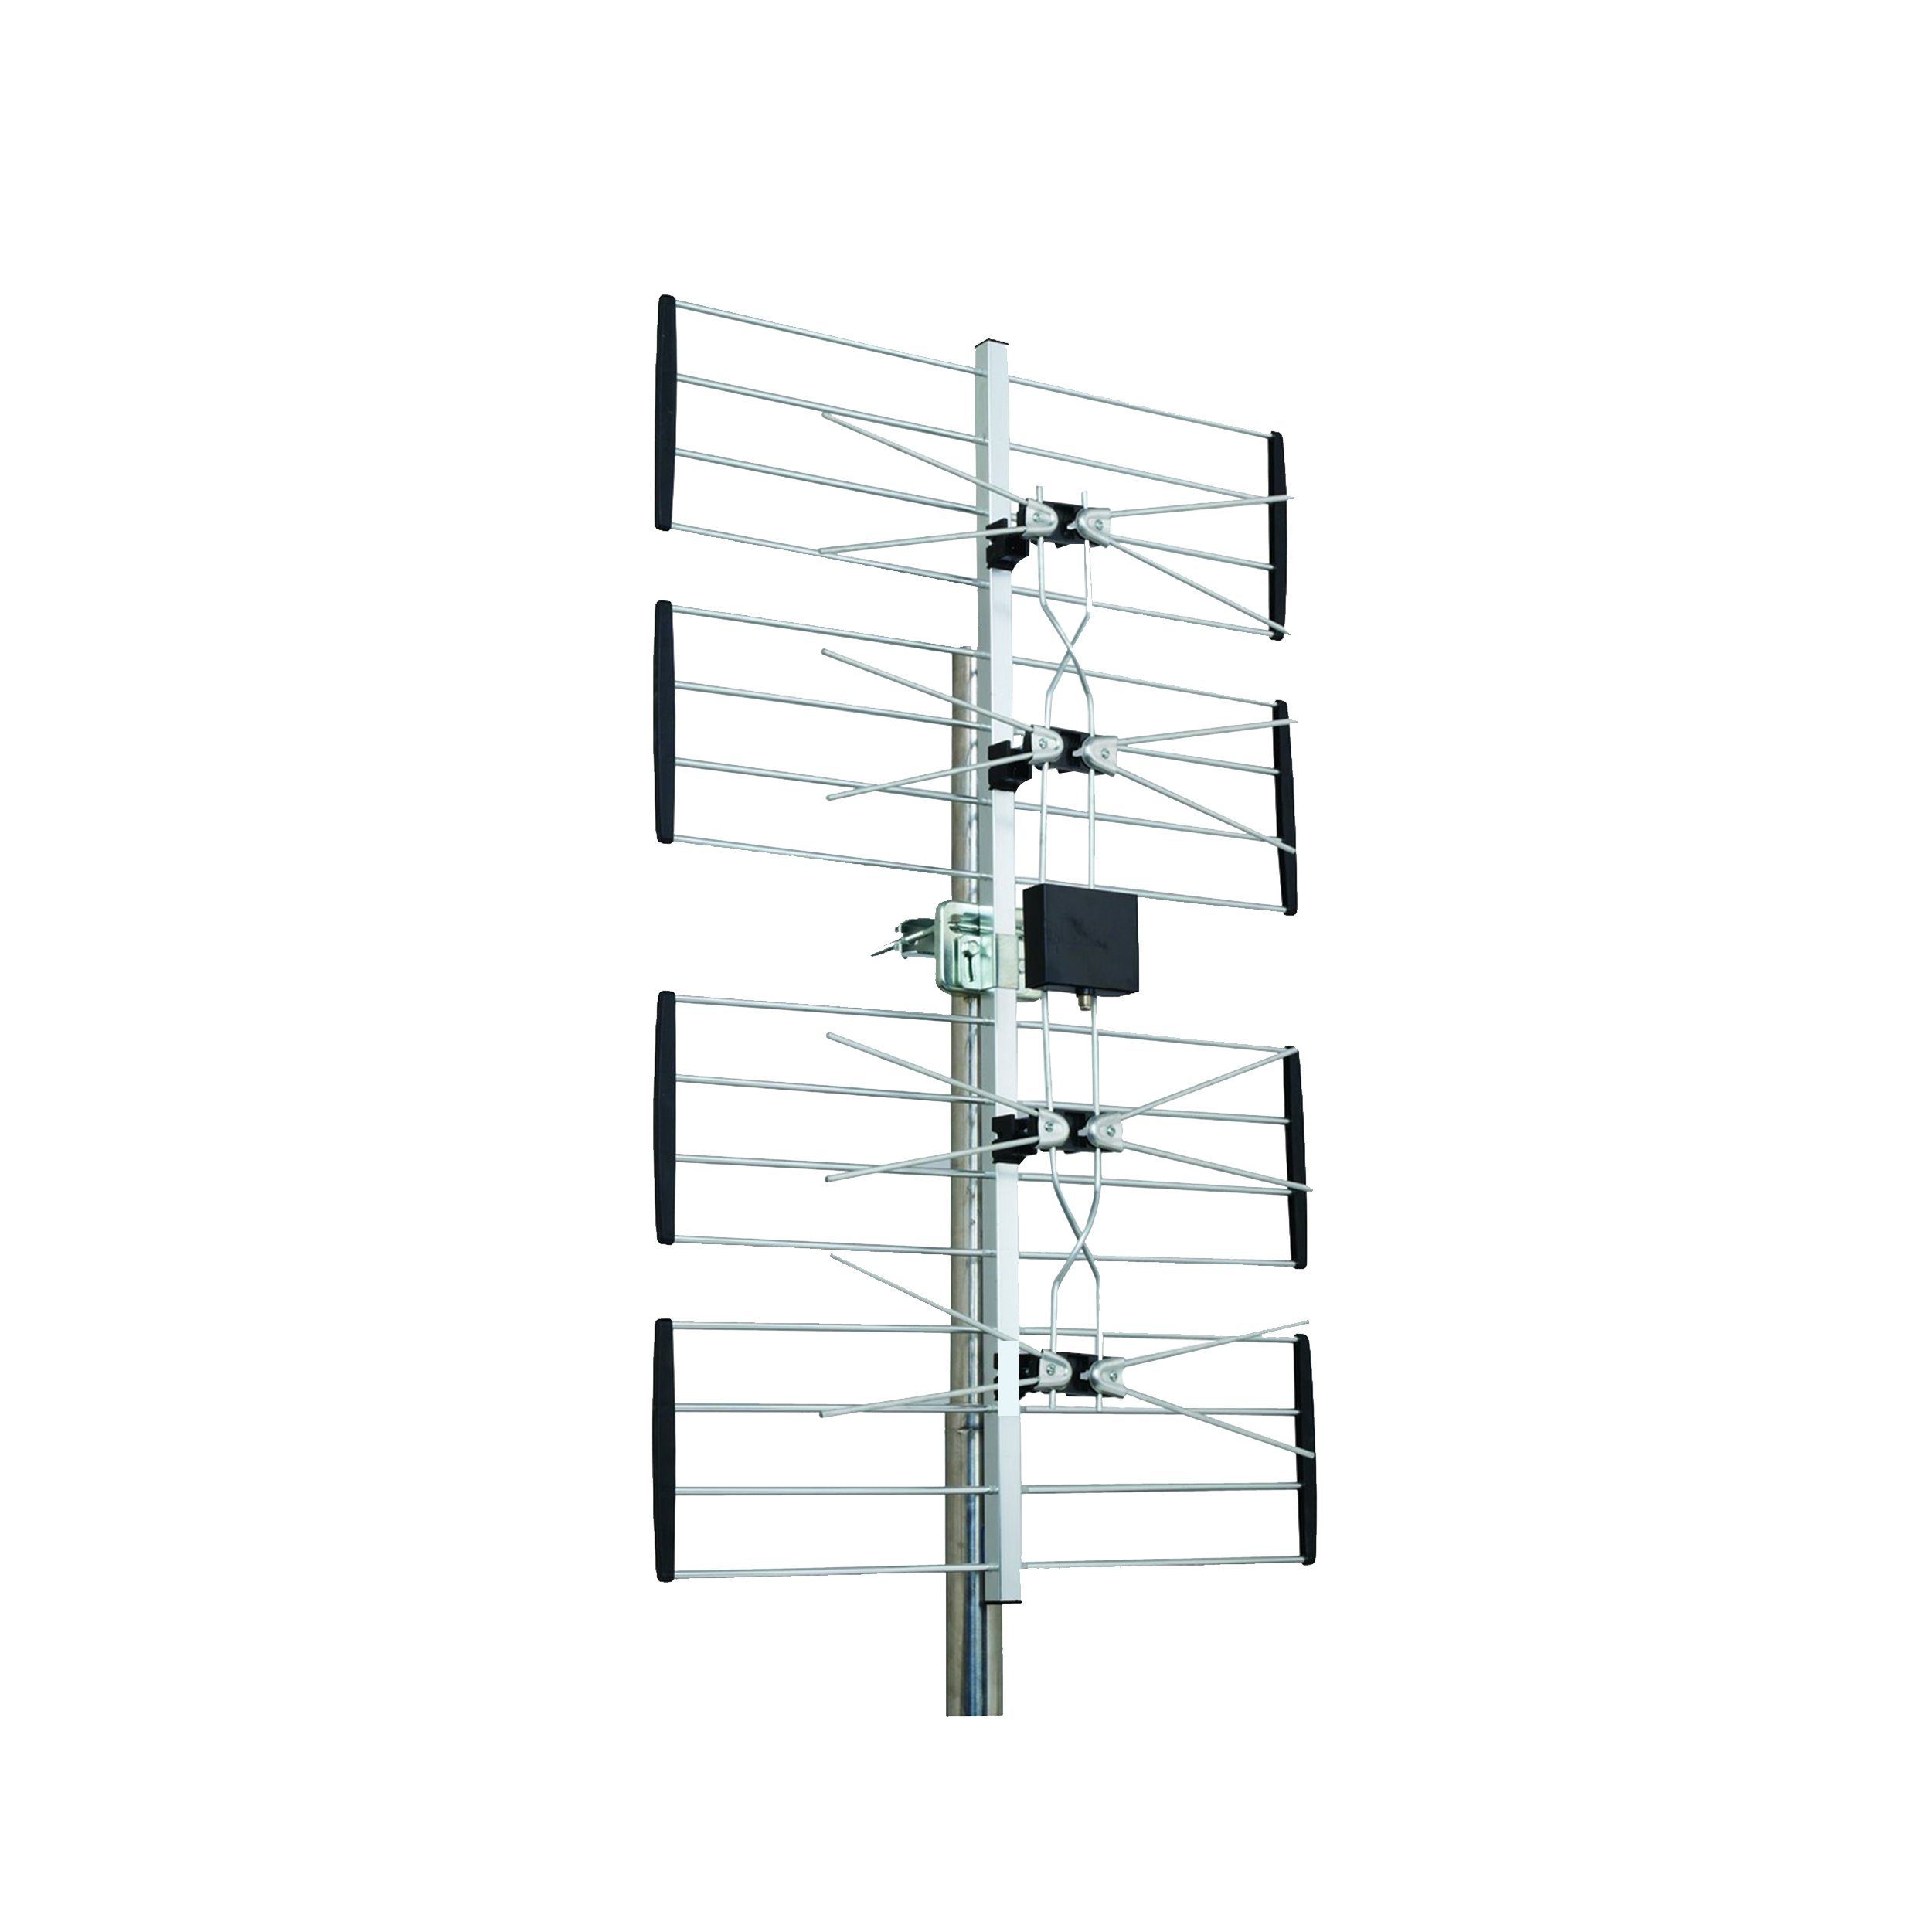 Homevision Technology ANT2085 Digiwave Outdoor 4 Bay HD TV Digital Antenna, Silver